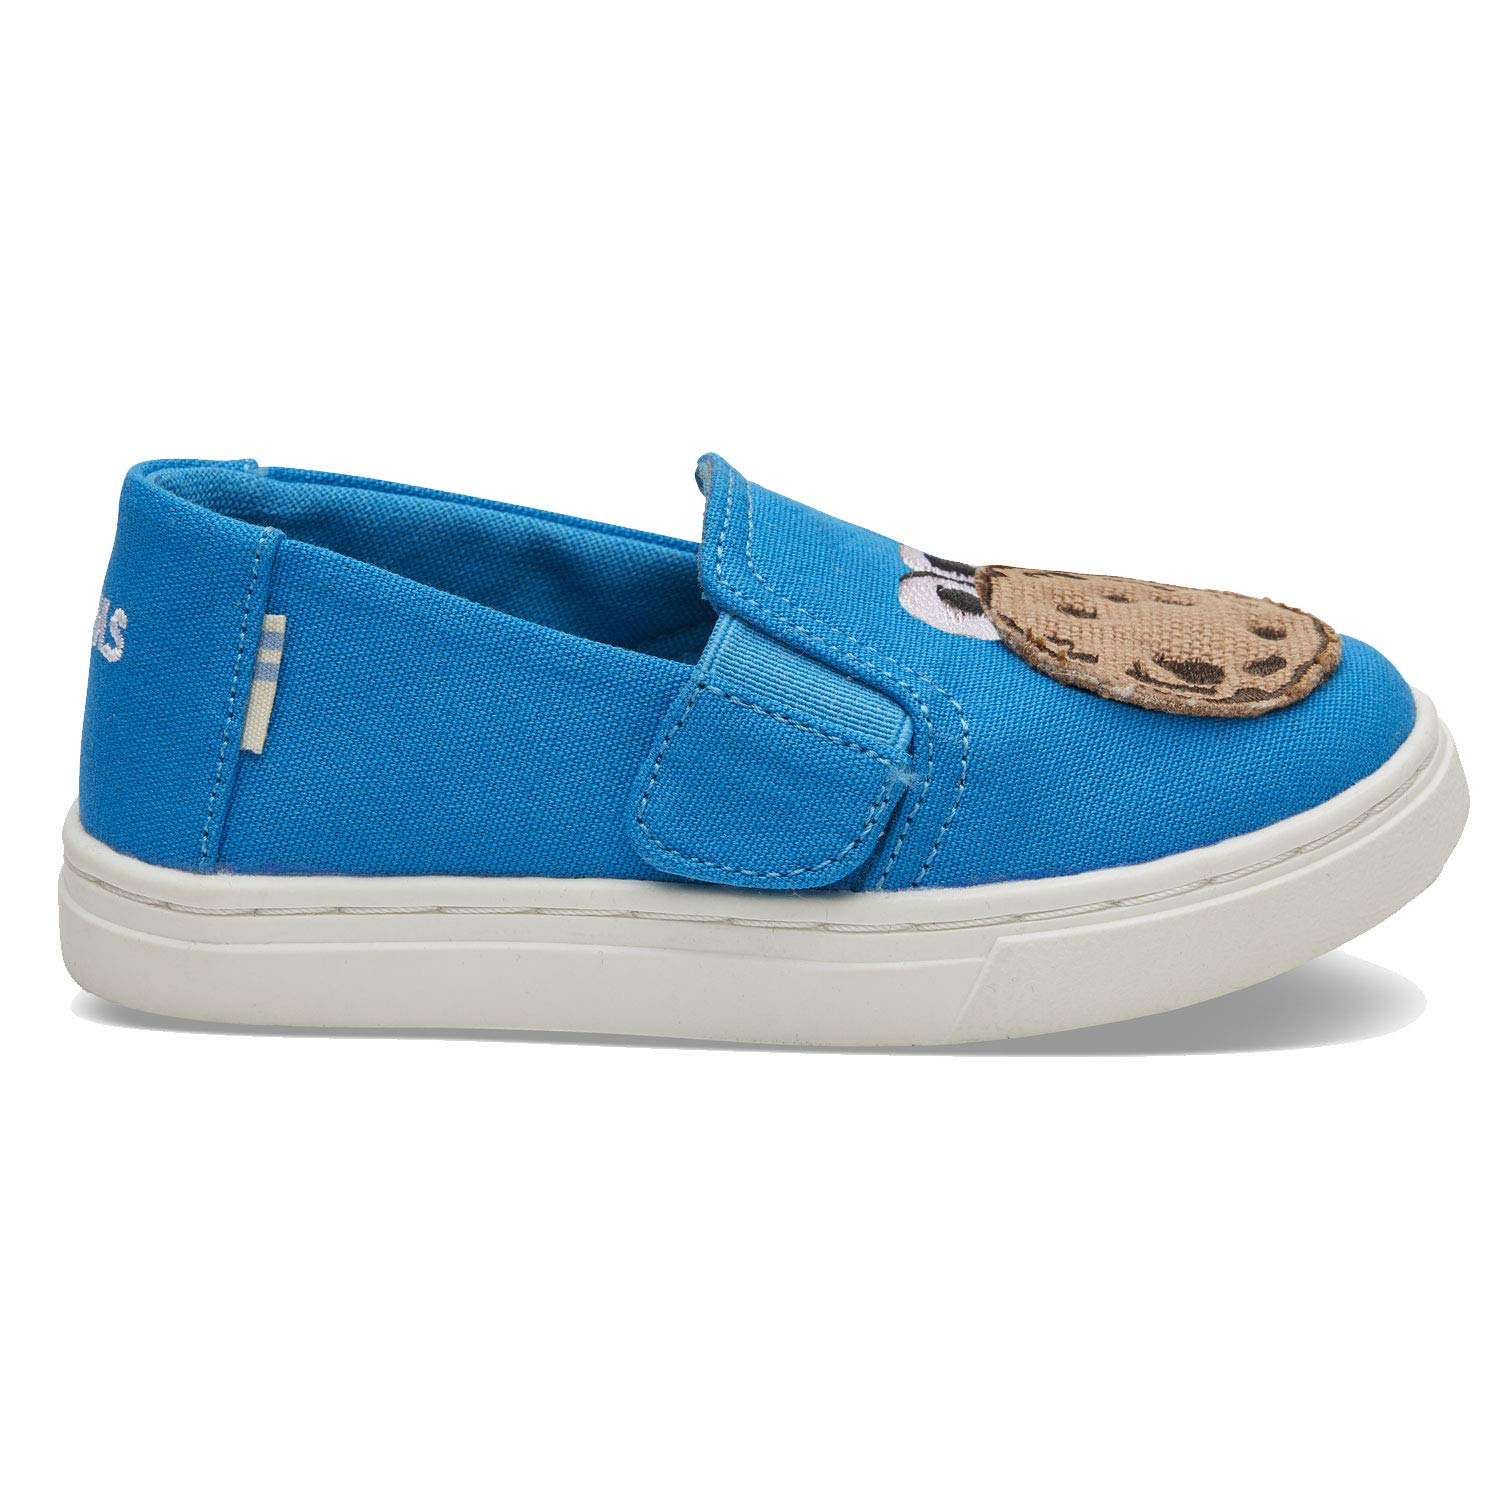 TOMS Sesame Street X Cookie Monster Applique Tiny Luca Slip-Ons 10013646 (Size: 9) Blue by TOMS (Image #1)